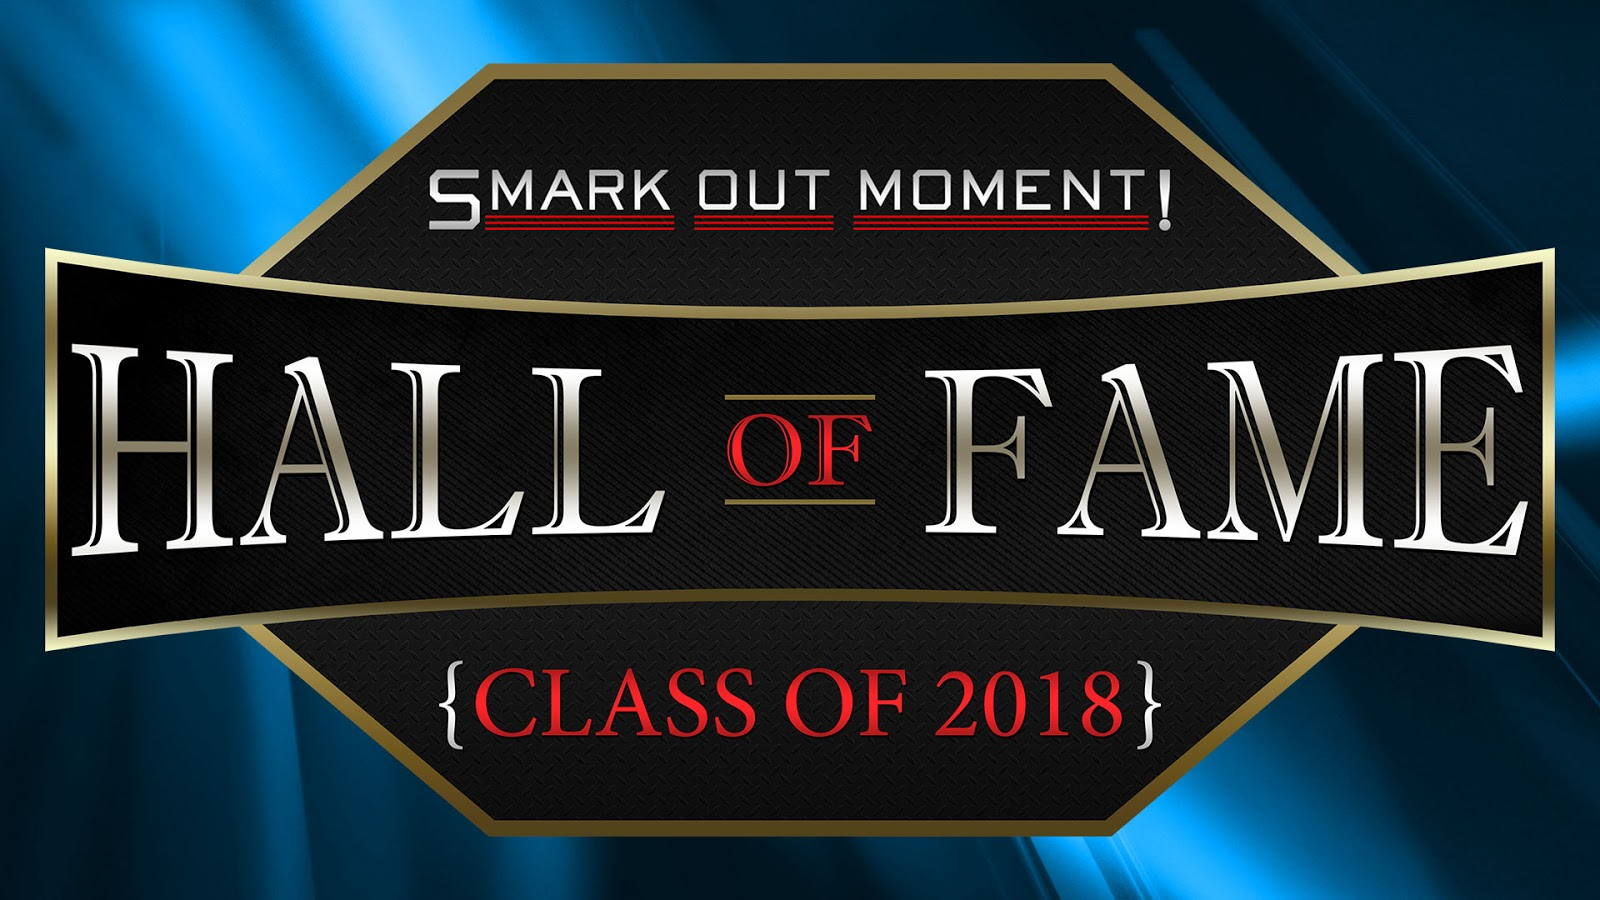 Smack Talk Hall of Fame class of 2018